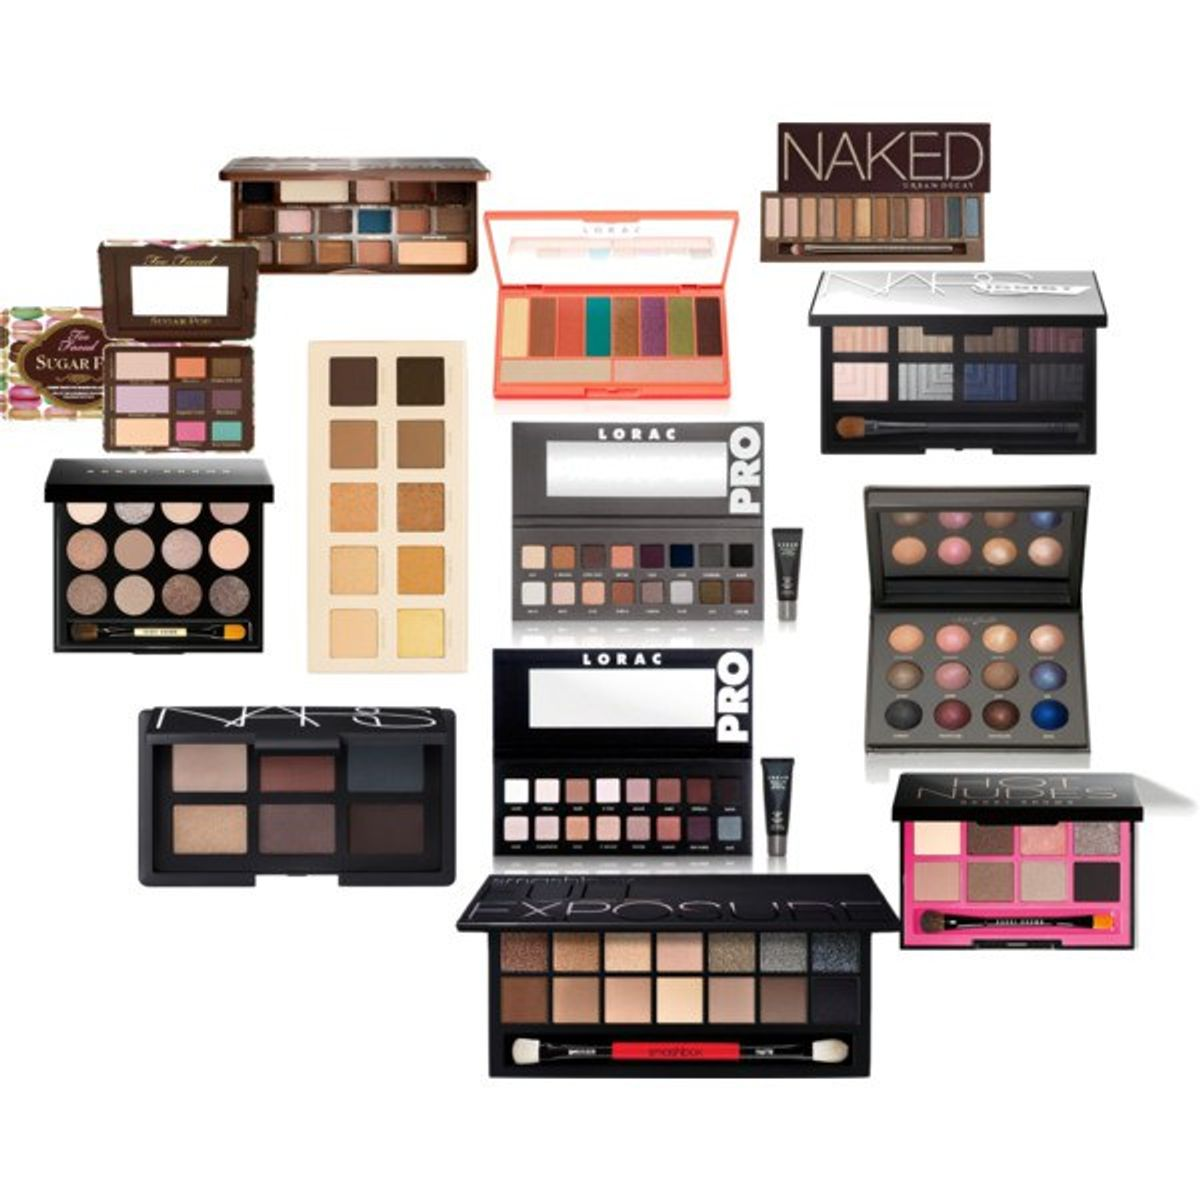 4 Eyeshadow Palettes You Need to Own